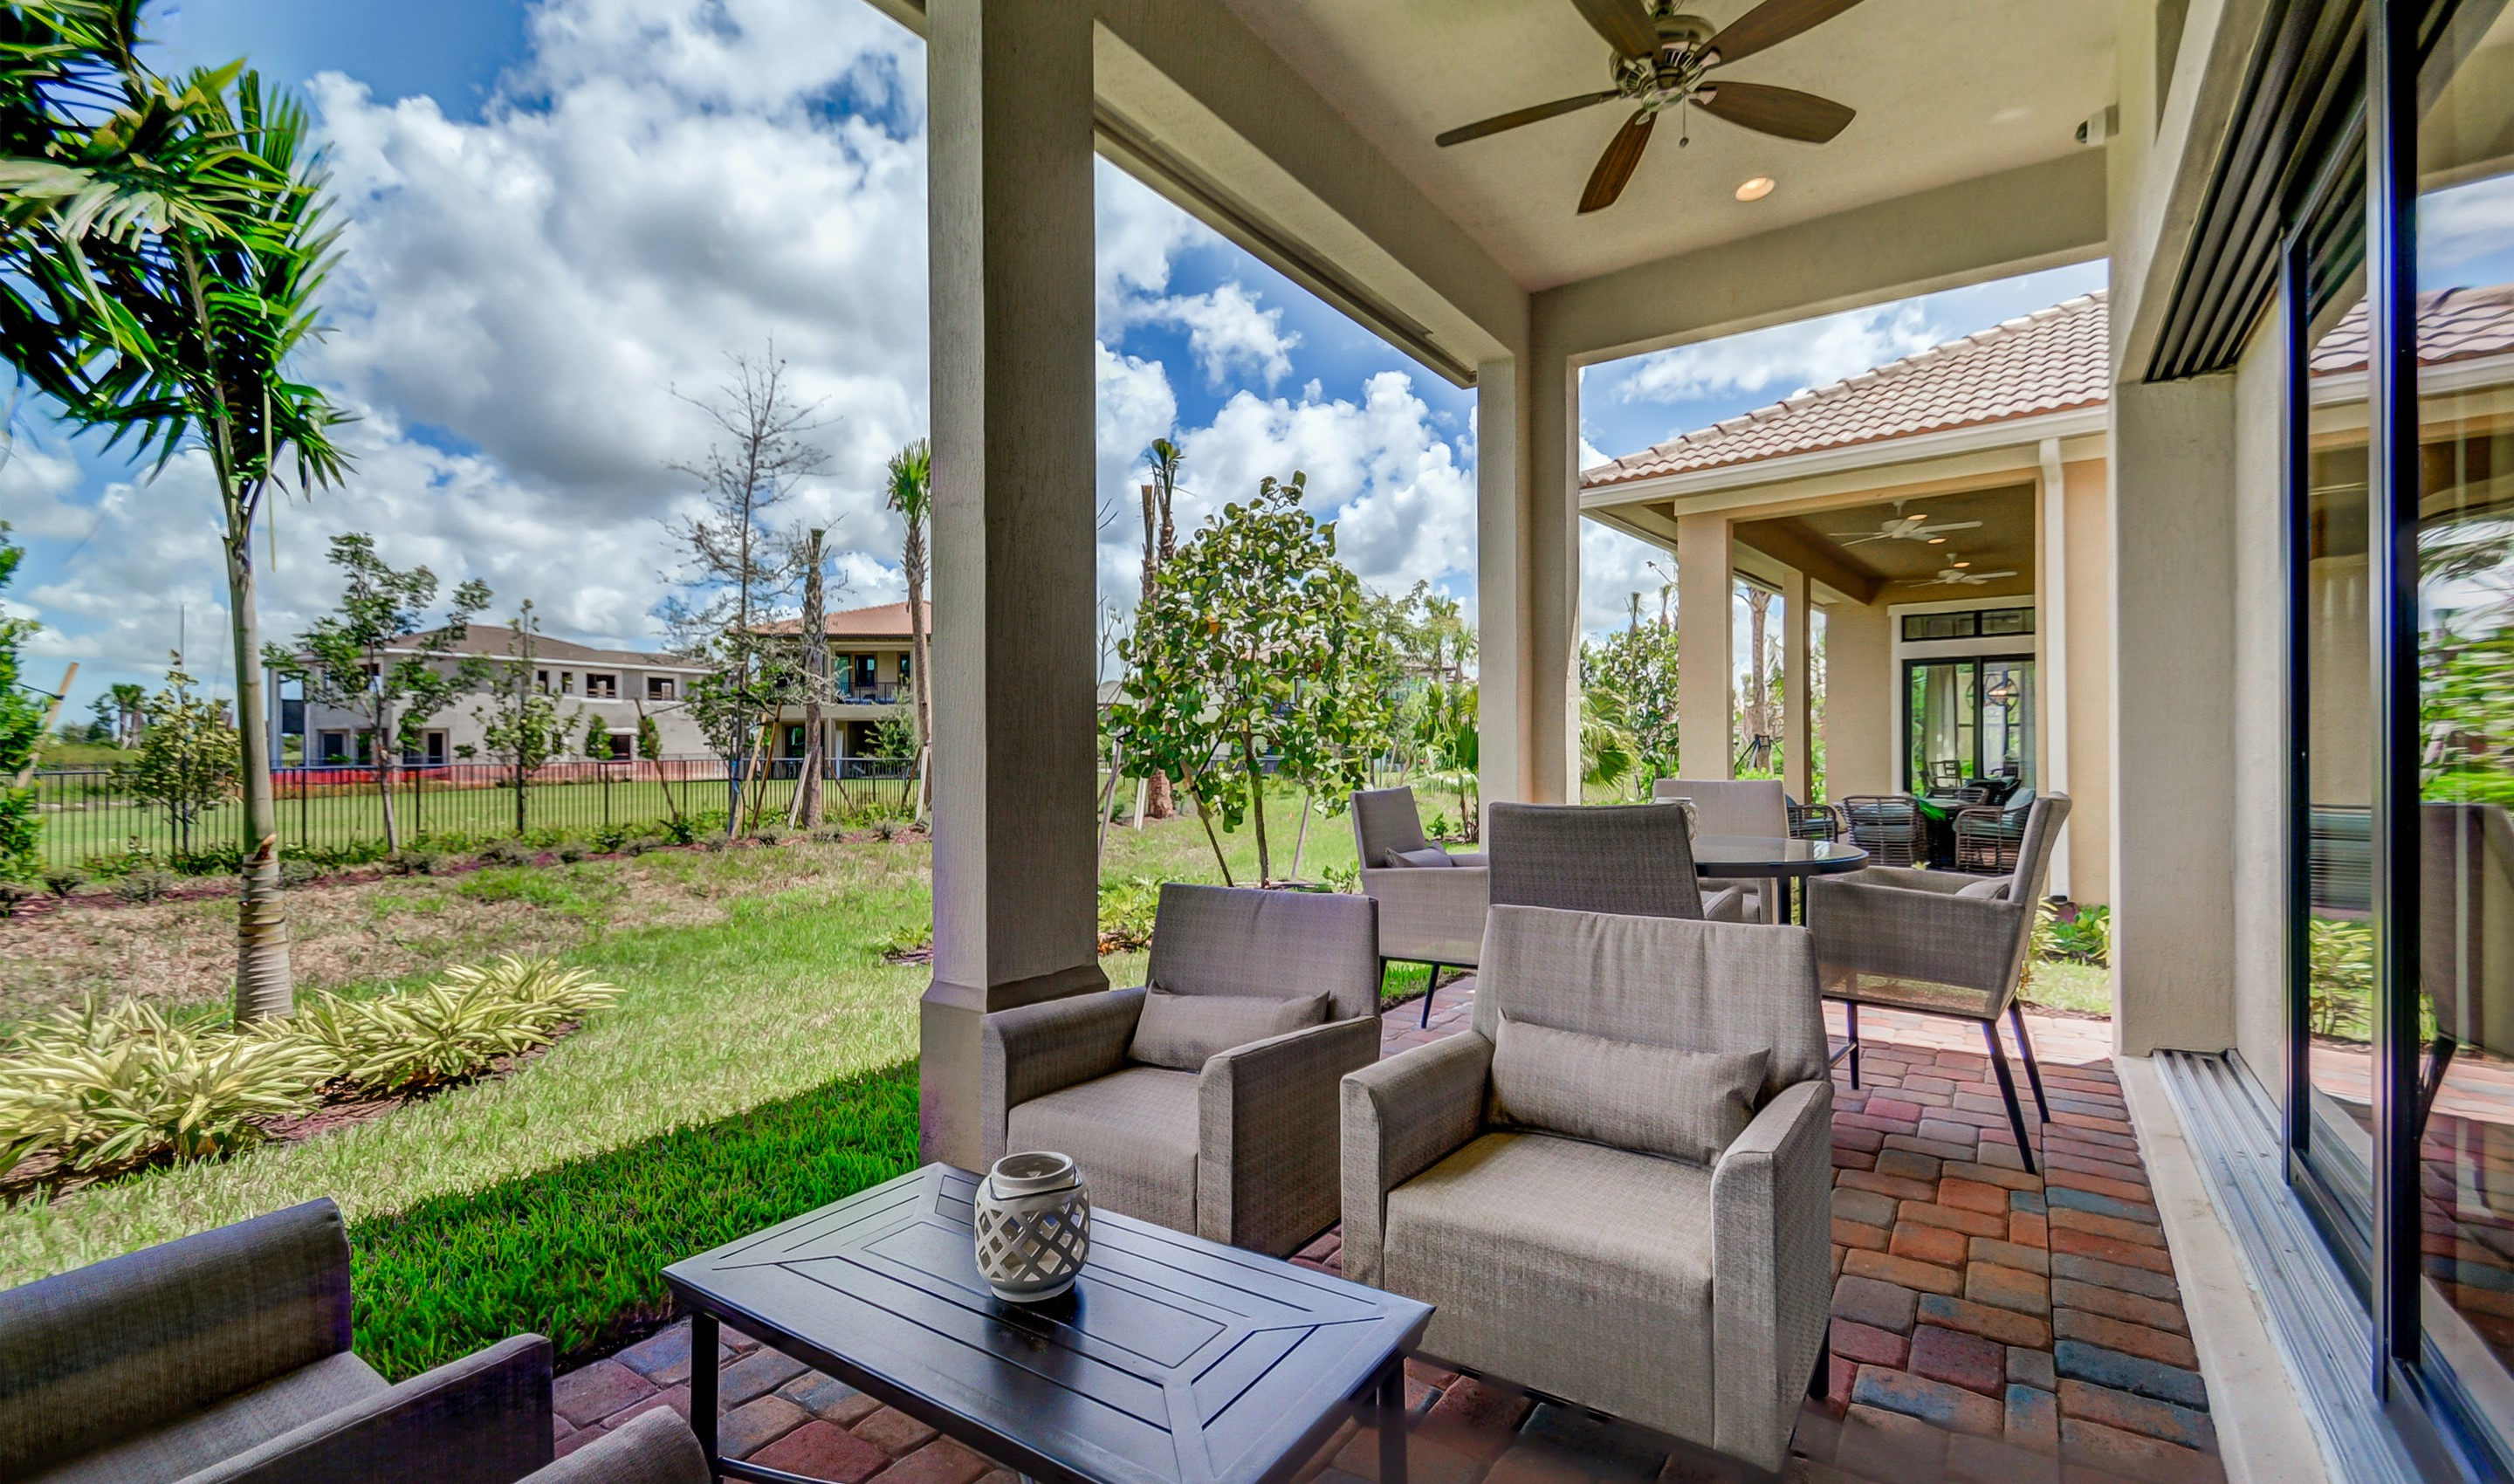 Covered lanai for relaxing outdoors